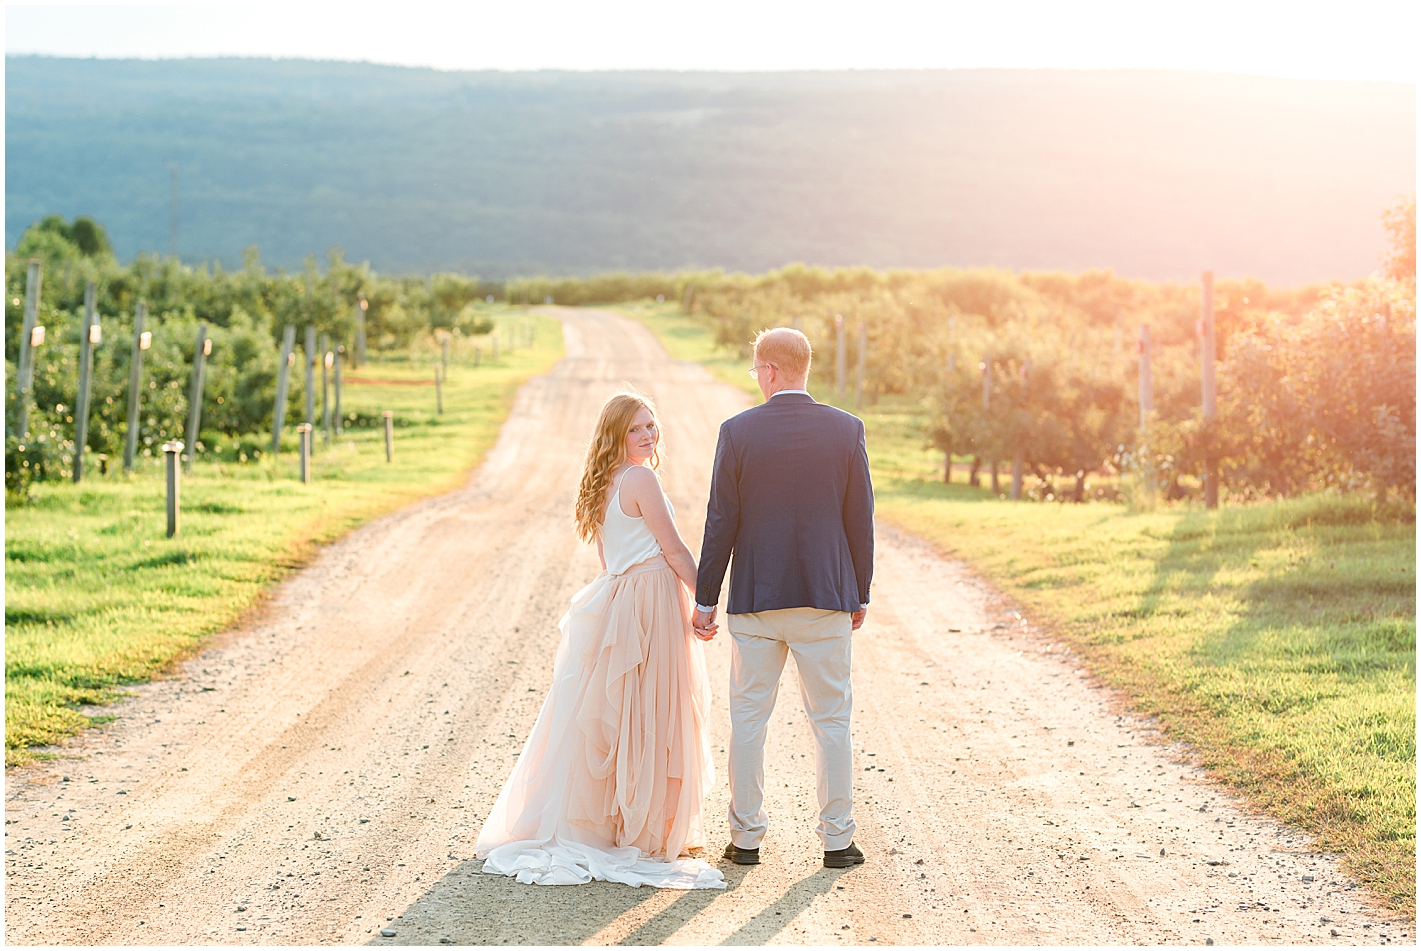 Pink skirt white top engagement photo outfits by Alyssa Parker Photography